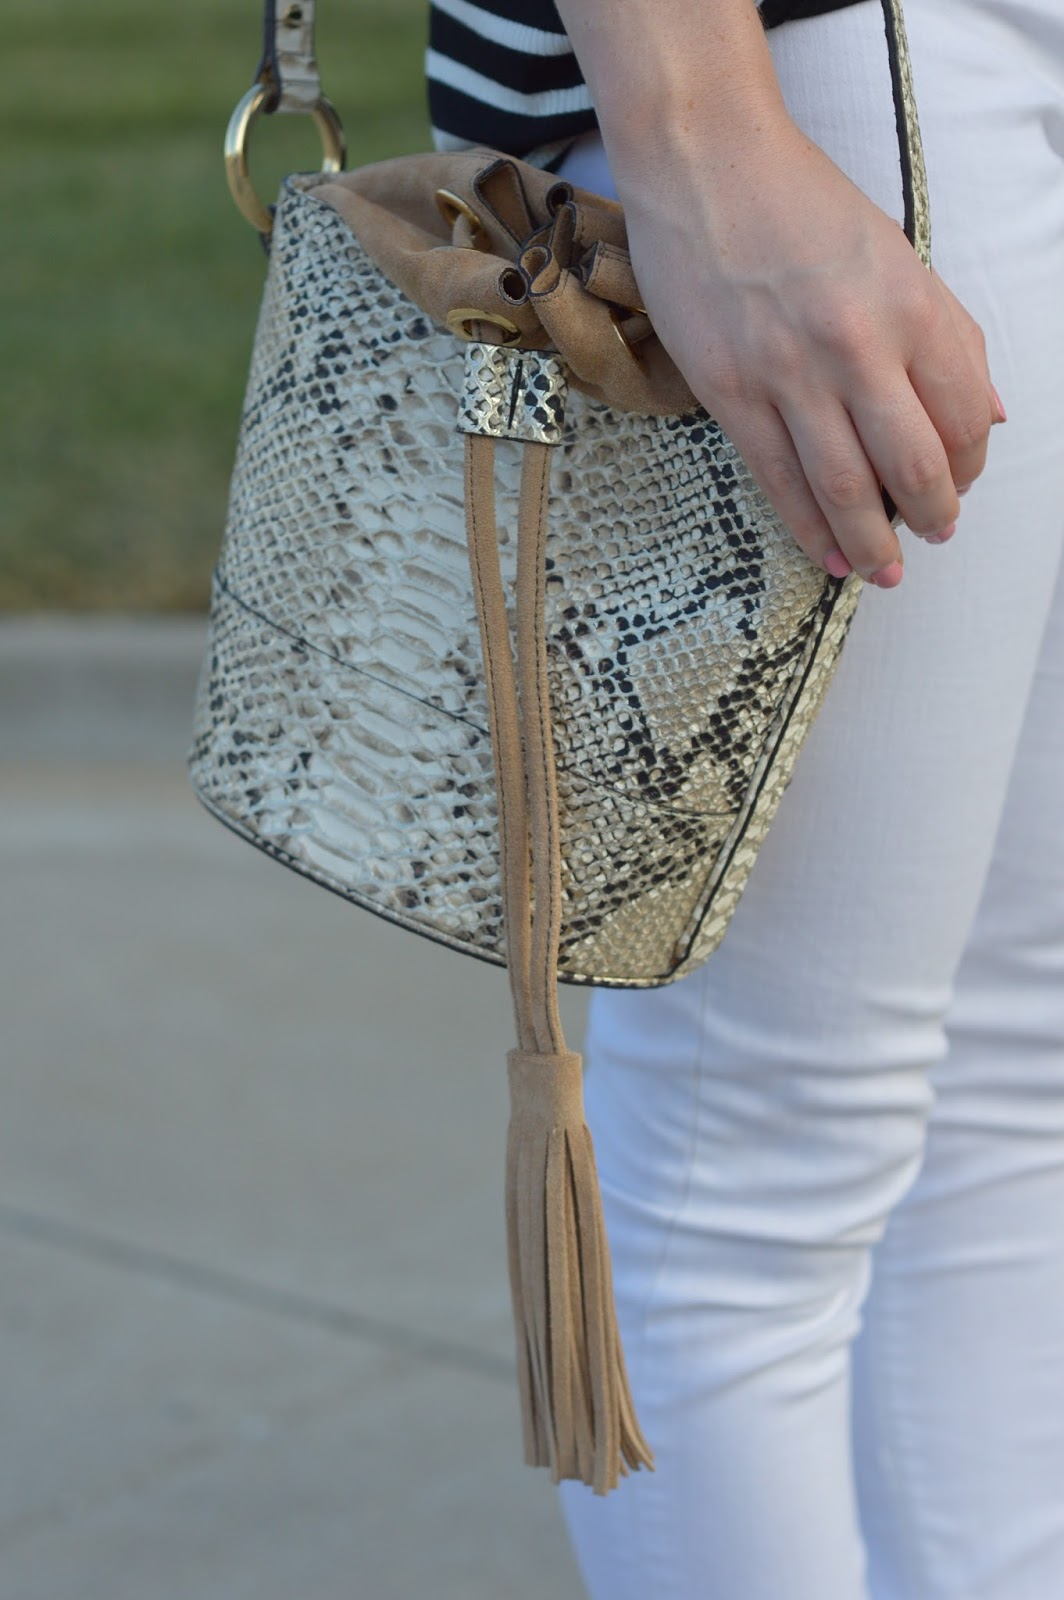 snakeskin bucket bag from banana republic | pattern mixing | cute bucket bags | purse review from banana republic |